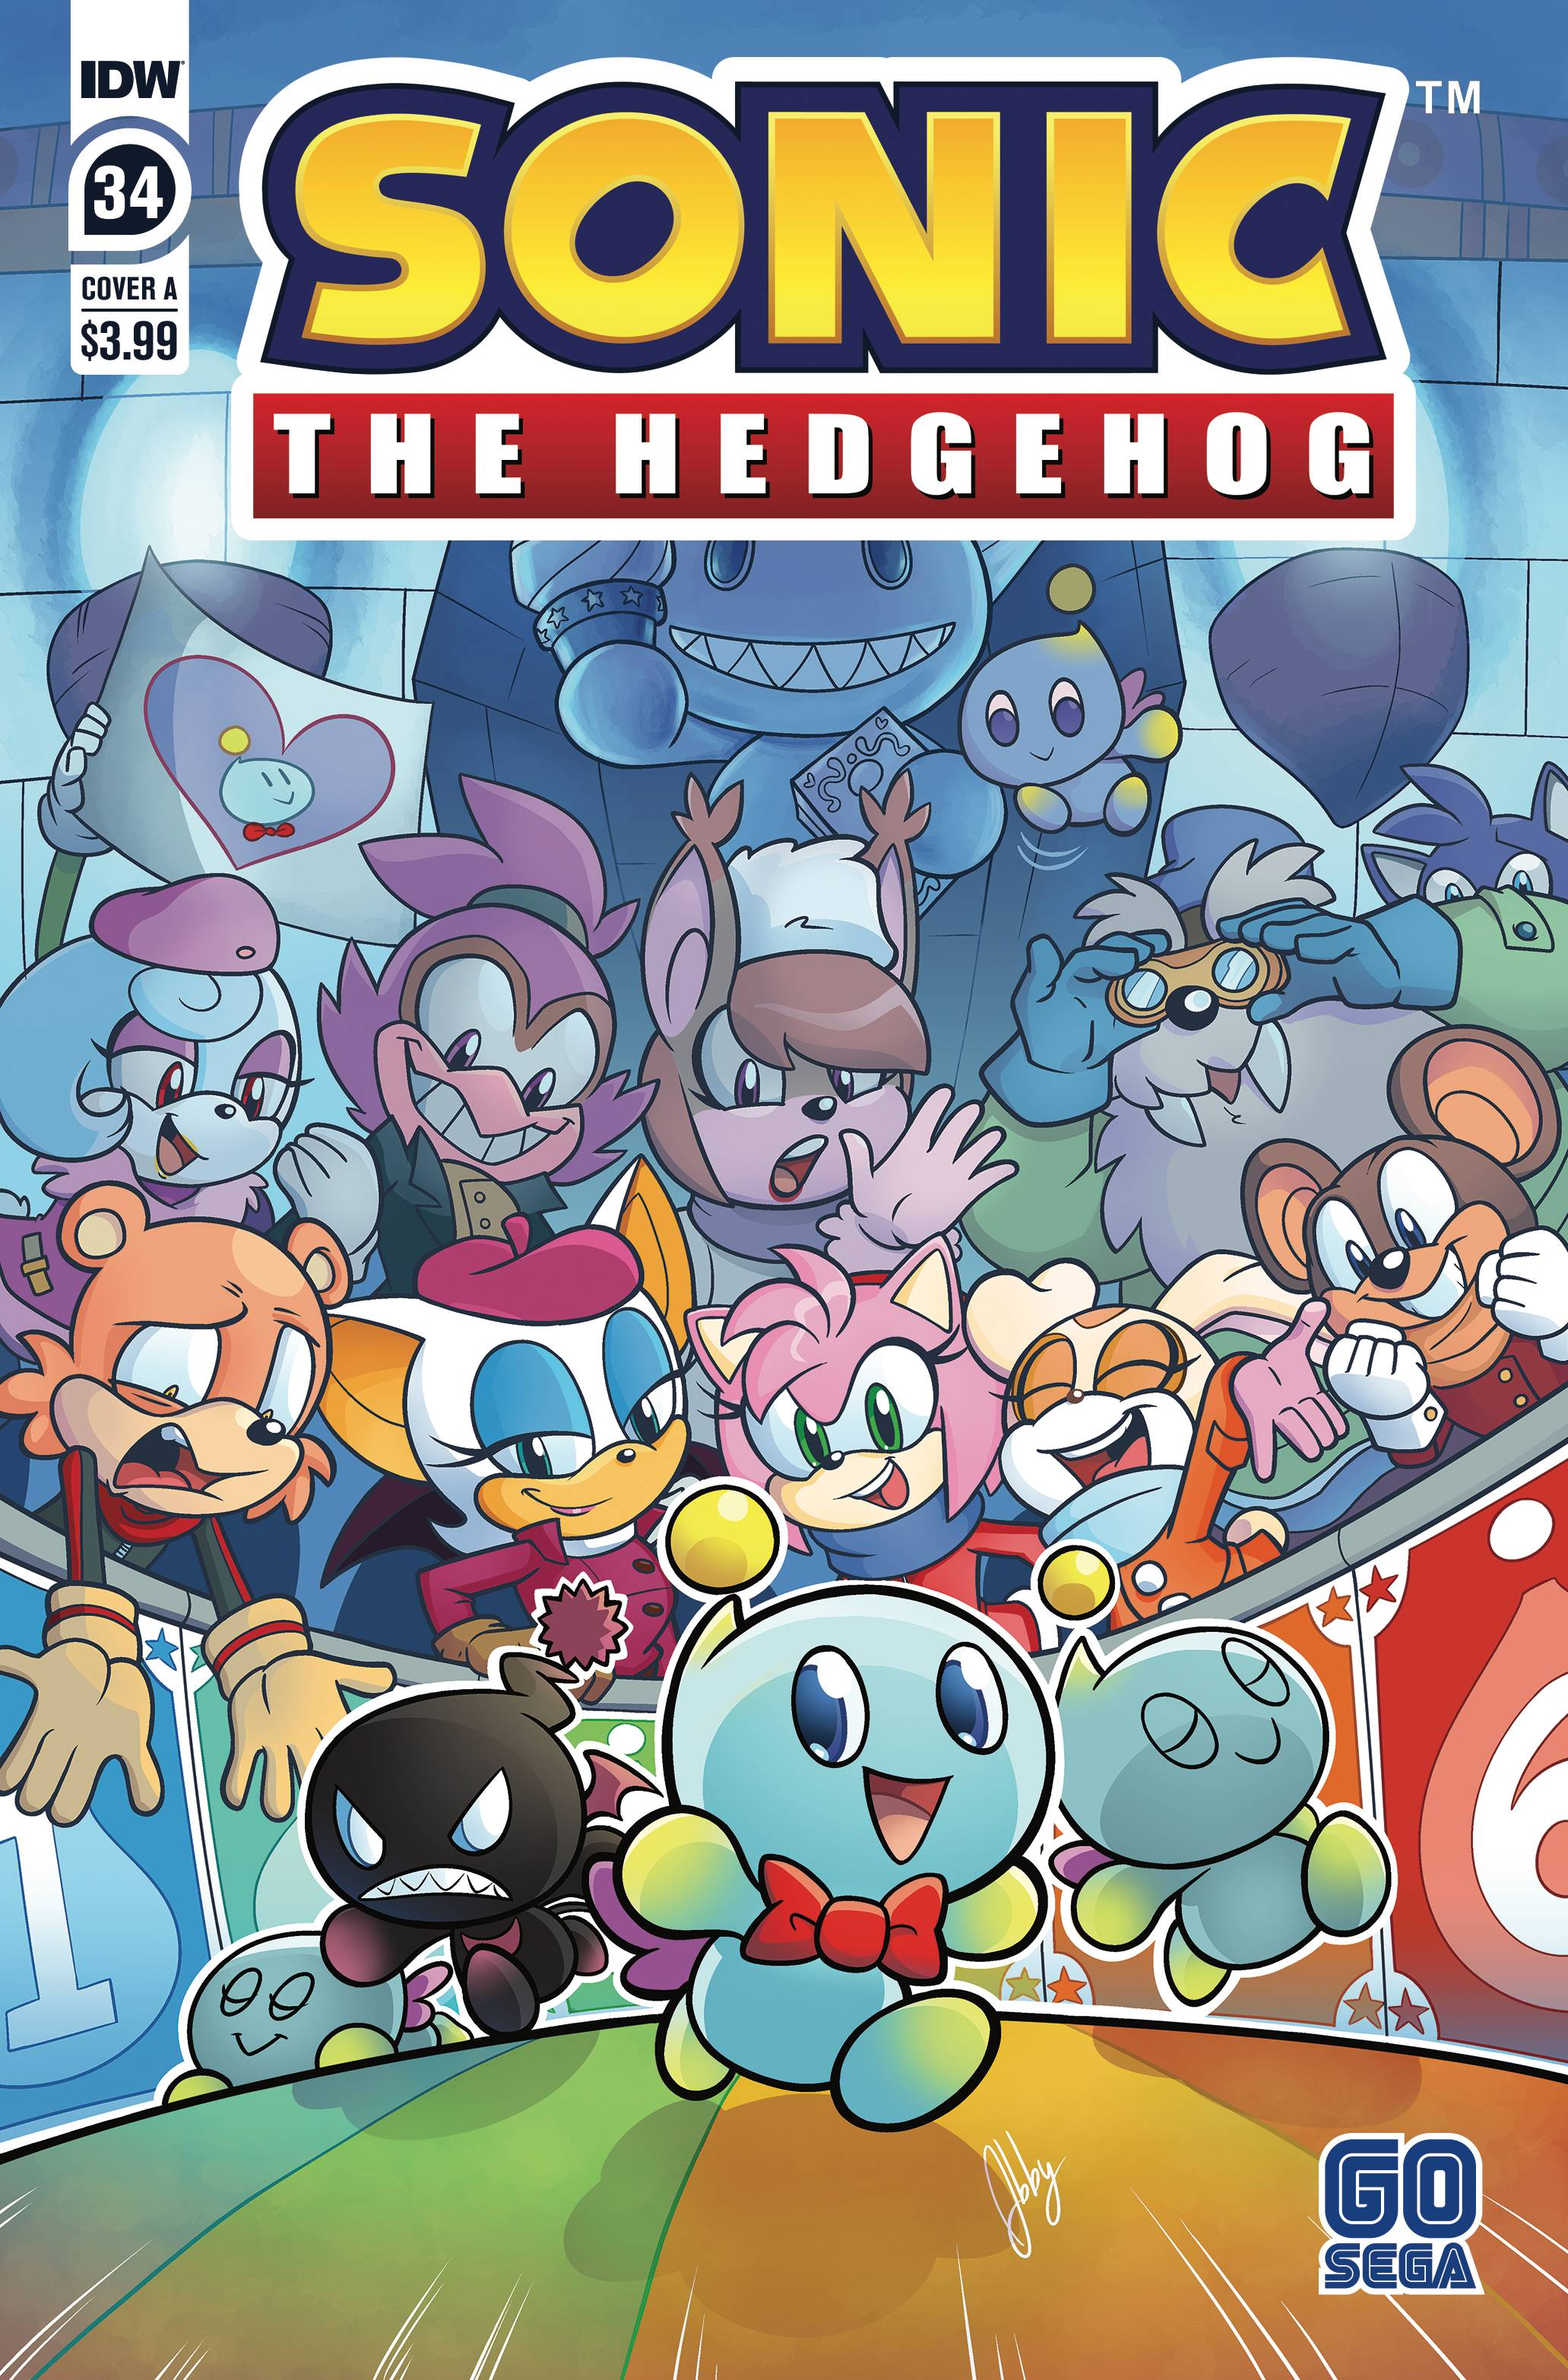 SONIC THE HEDGEHOG #34 CVR A BULMER